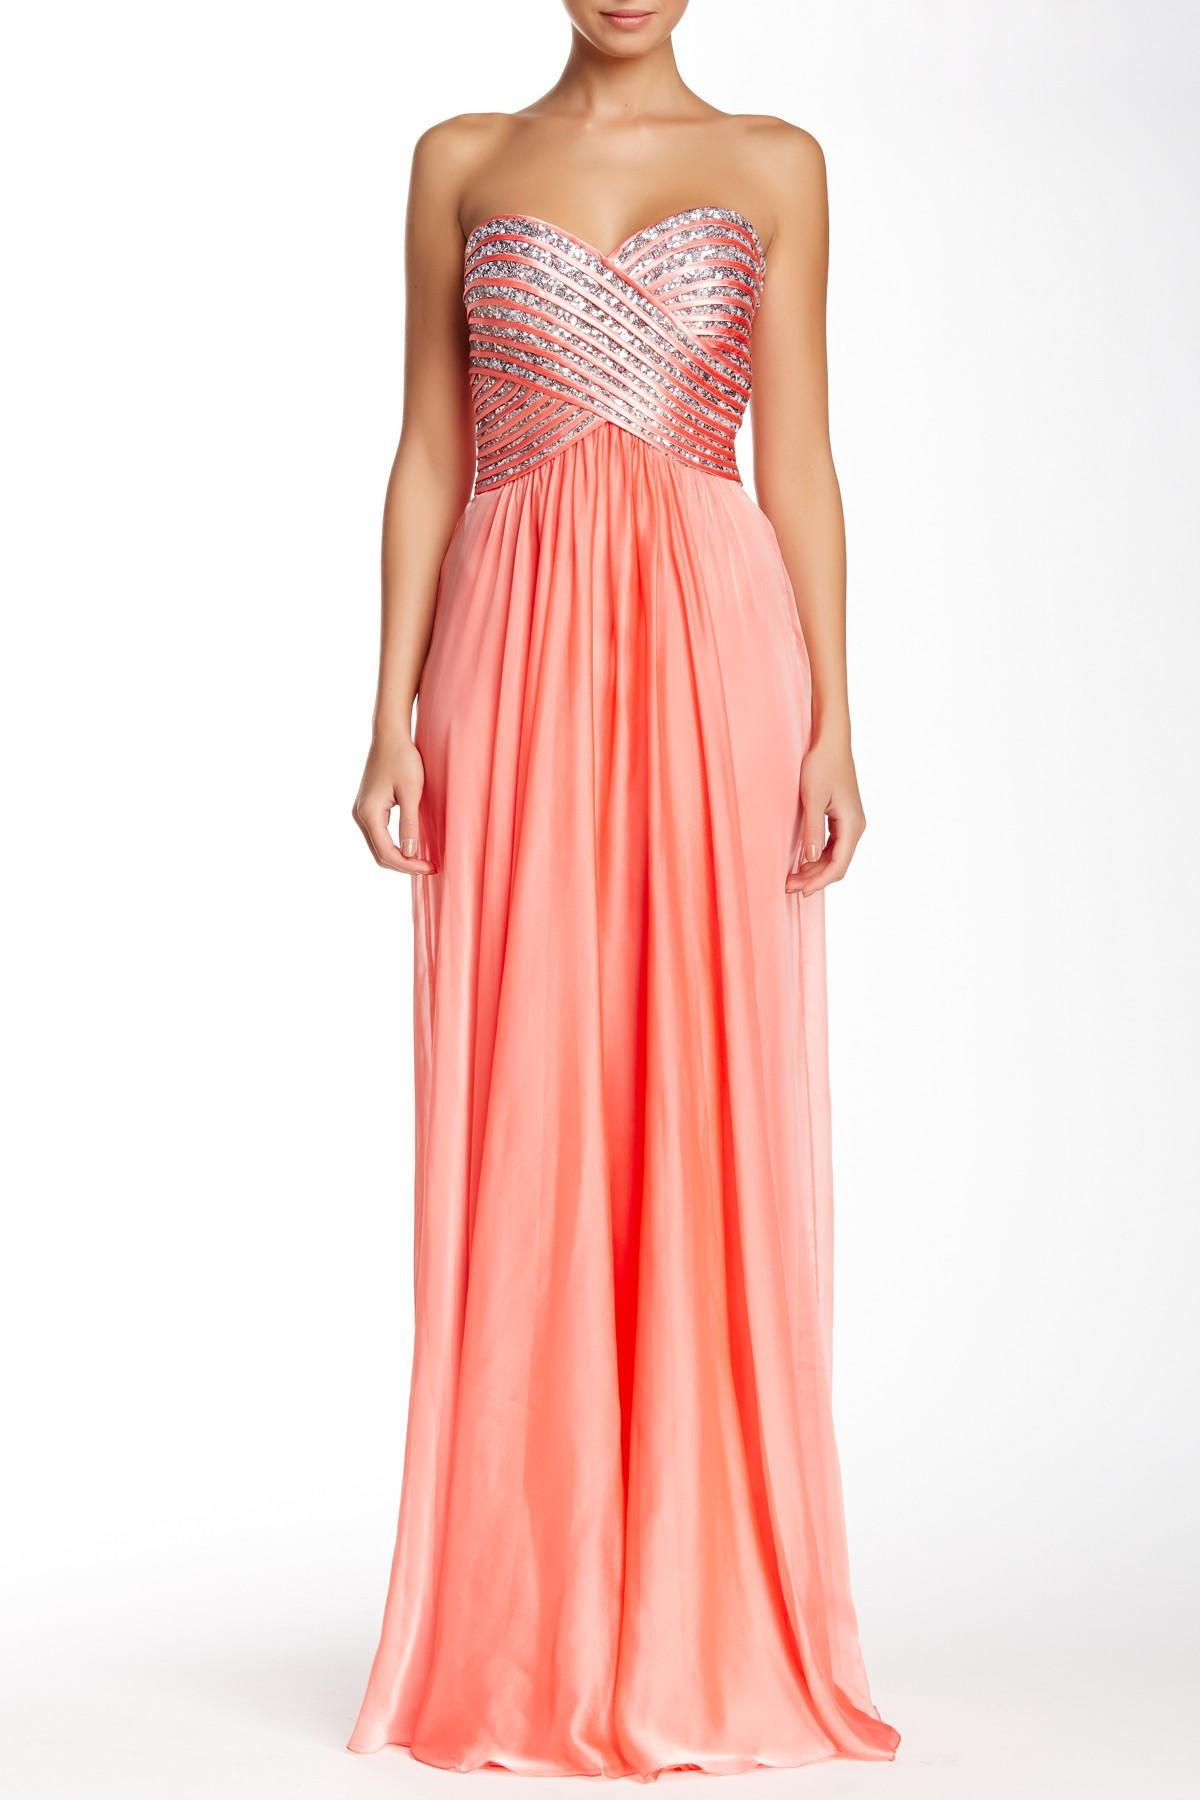 nordstrom rack evening dresses photo - 1